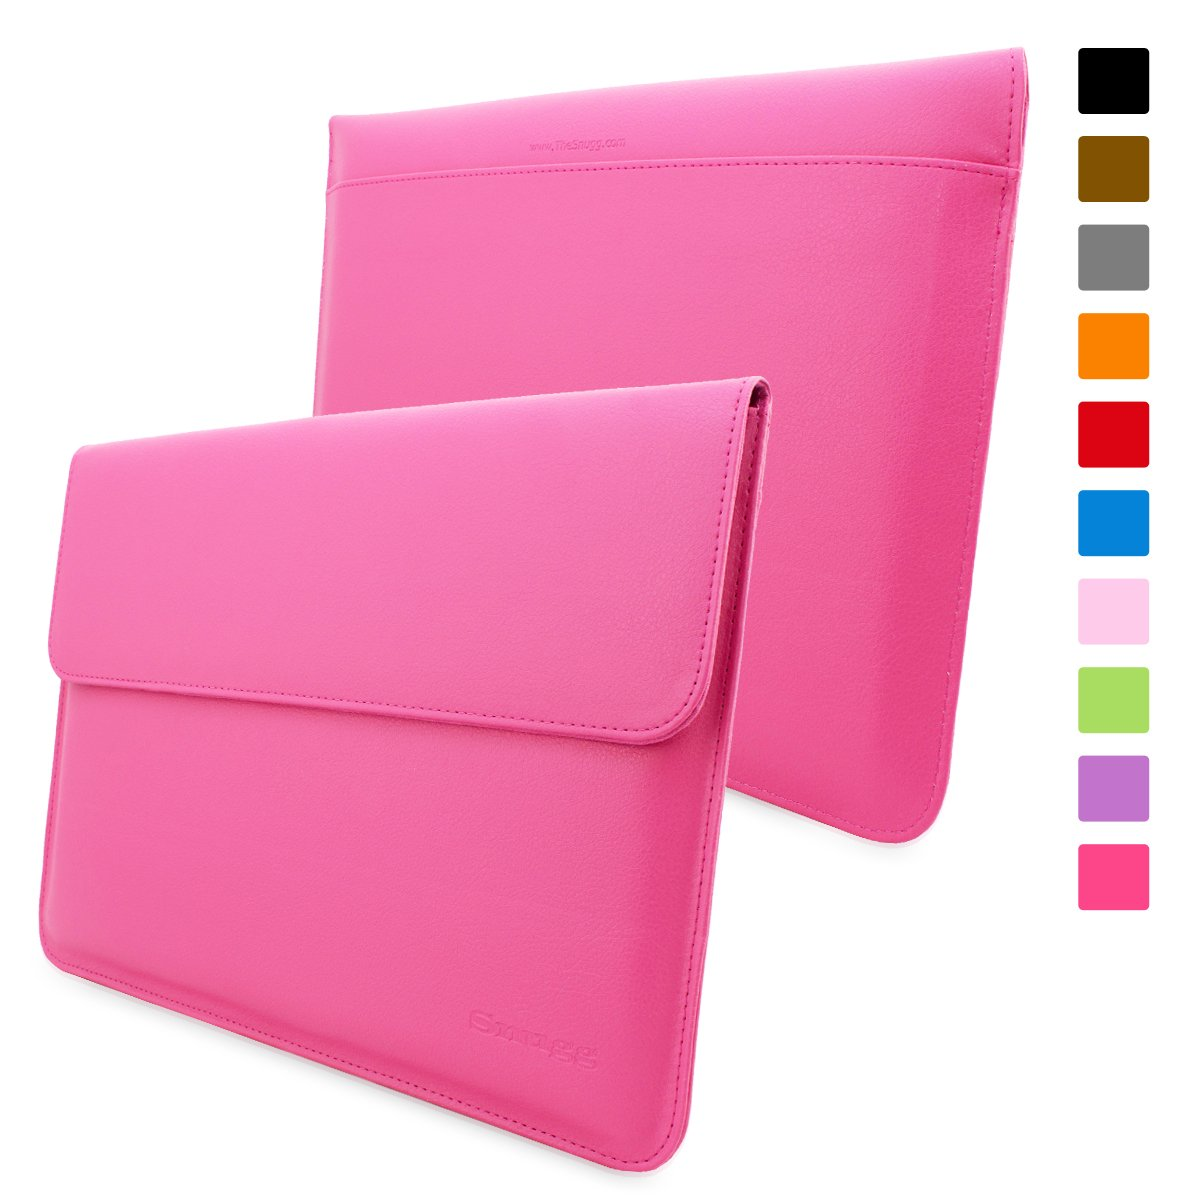 Snugg™ Macbook Air 11 Case   Leather Sleeve with Lifetime Guarantee (Hot Pink) for Apple Macbook Air 11Customer review and more information